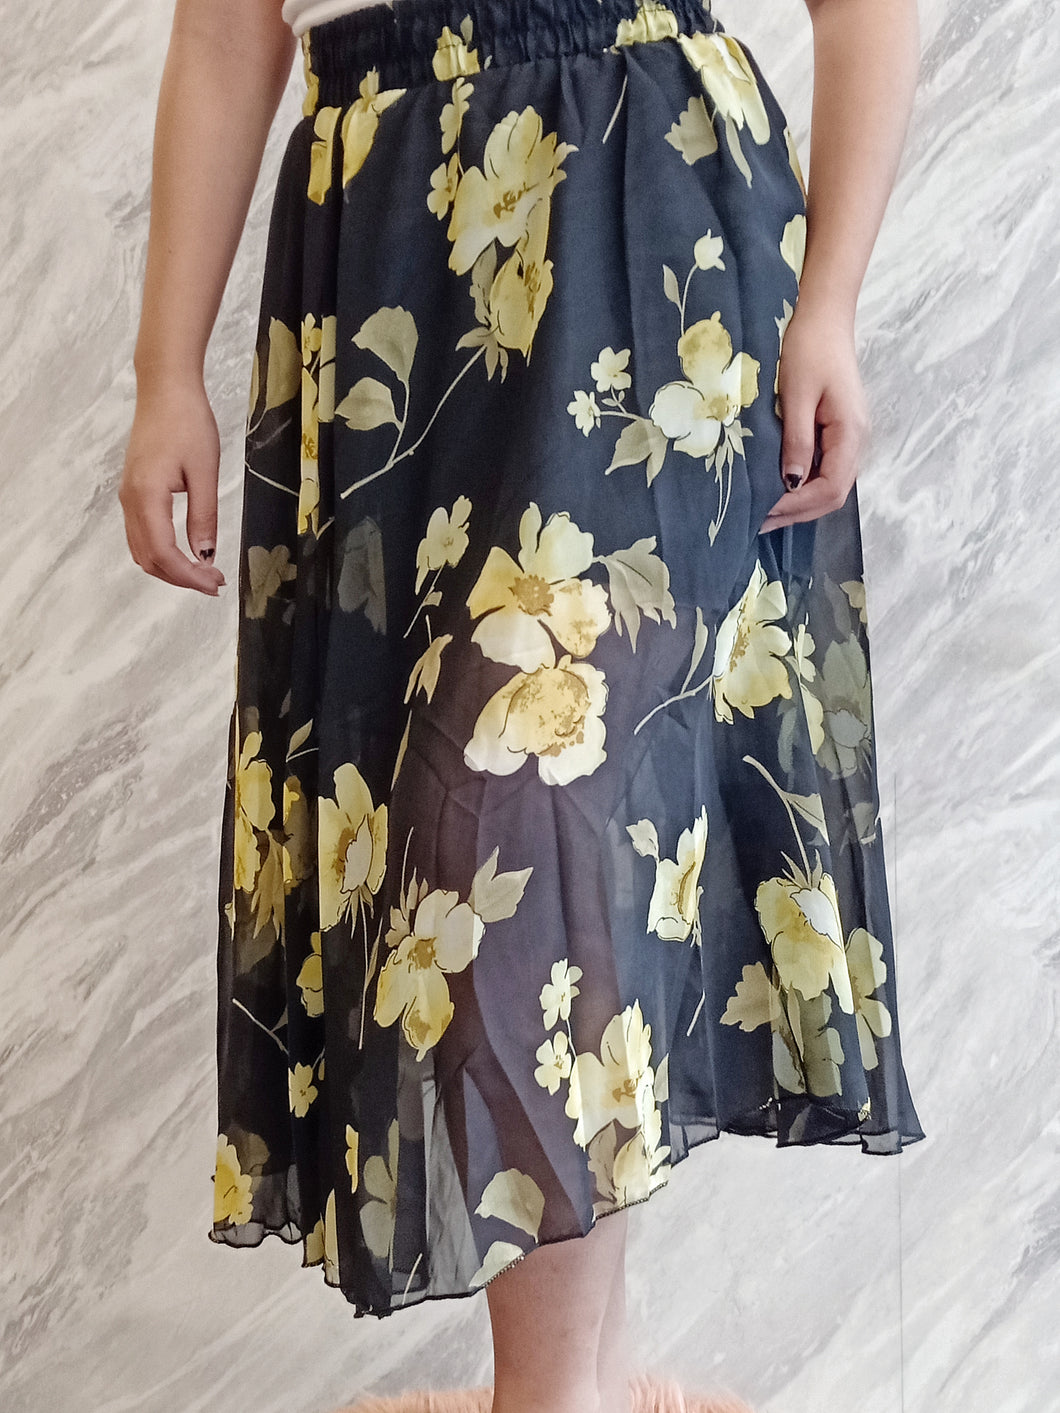 ELE-0235 Black yellow chiffon floral long skirt